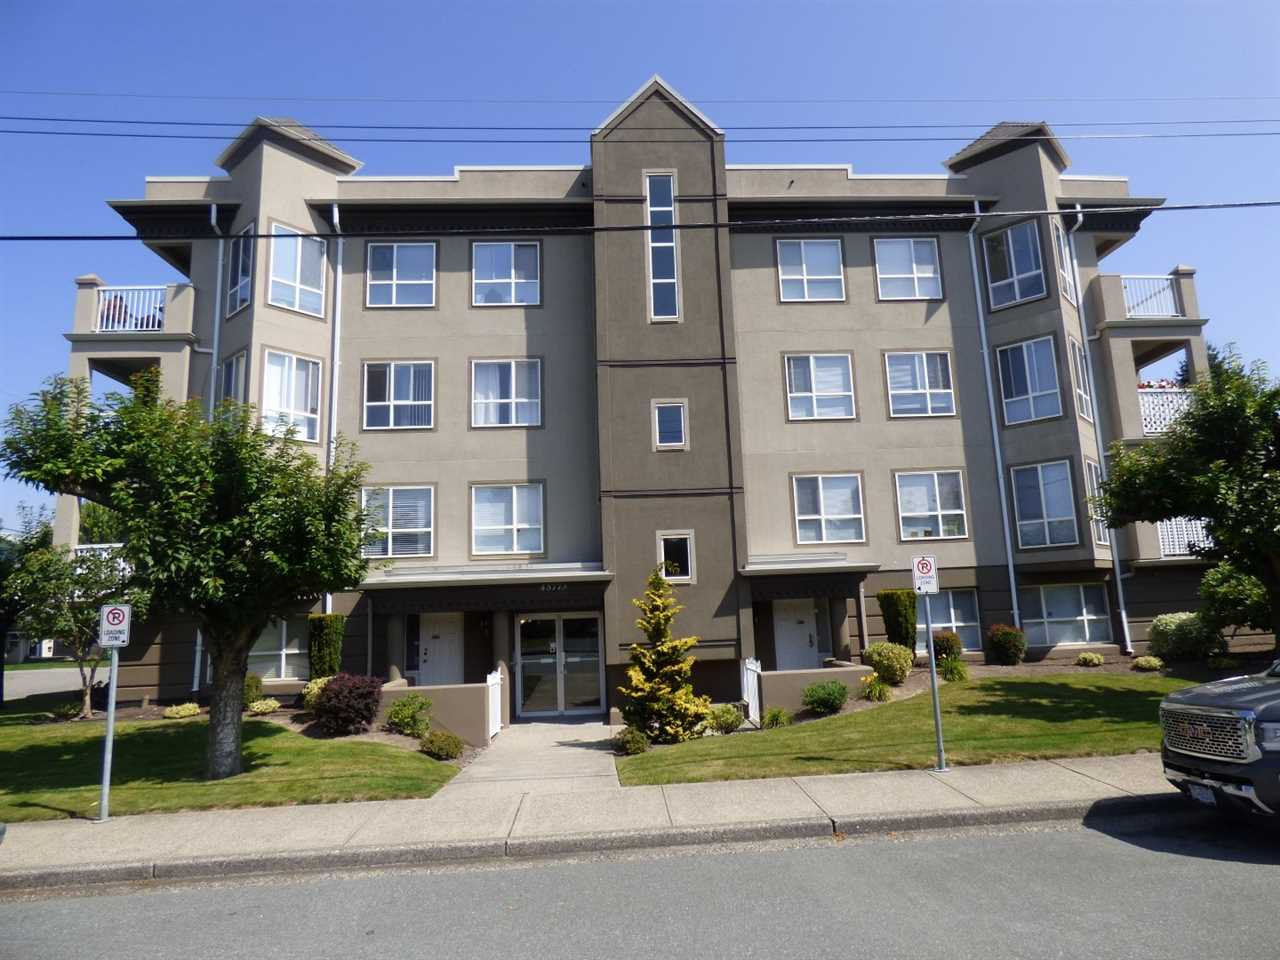 Main Photo: 205 45773 VICTORIA Avenue in Chilliwack: Chilliwack N Yale-Well Condo for sale : MLS®# R2424016